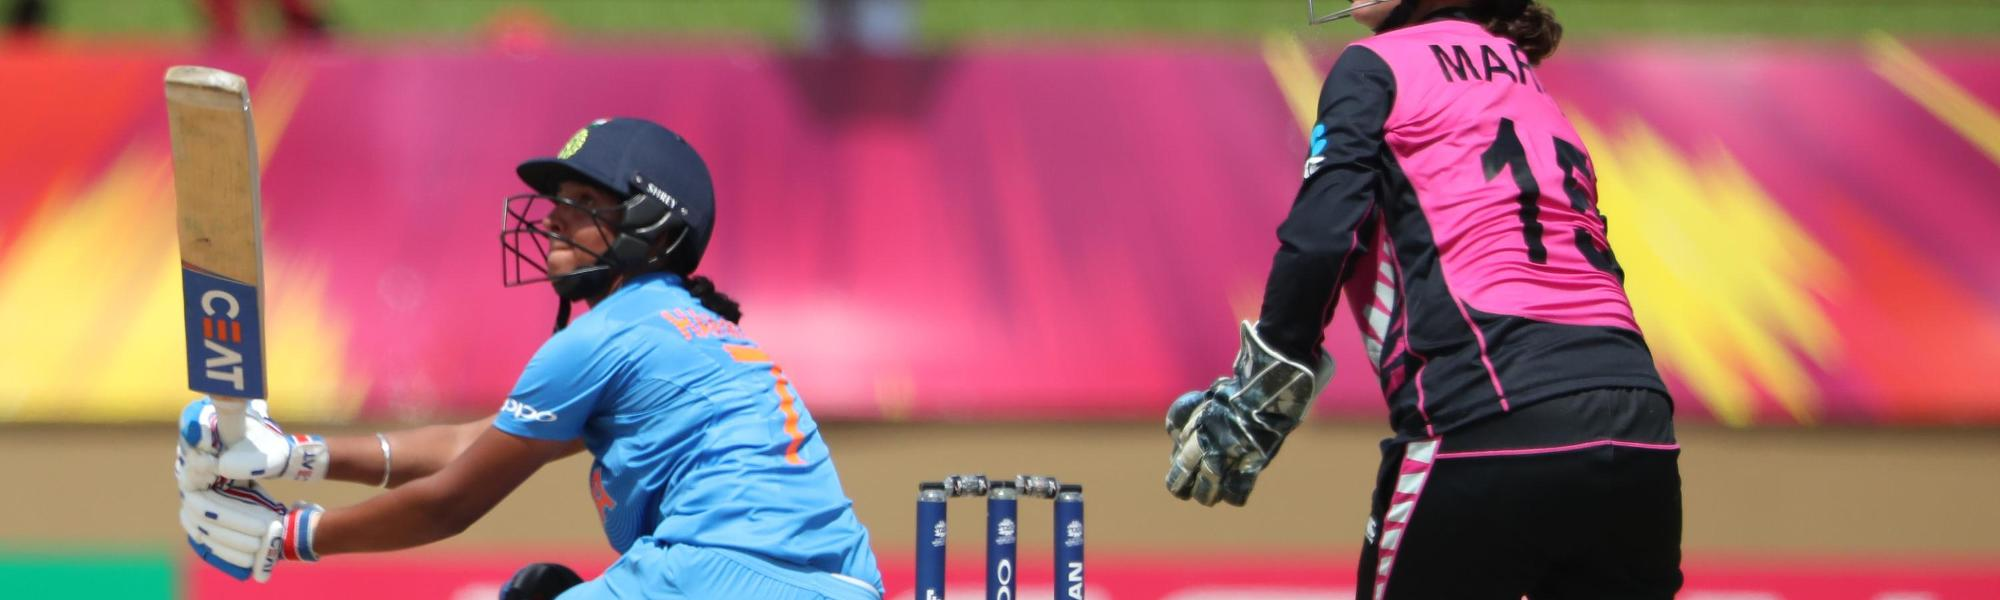 Harmanpreet Kaur of India sweeps as Katey Martin of New Zealand looks on during match 1 of the ICC Women's World T20 match between New Zealand v India on November 9, 2018 at the National Stadium in Providence, Guyana.